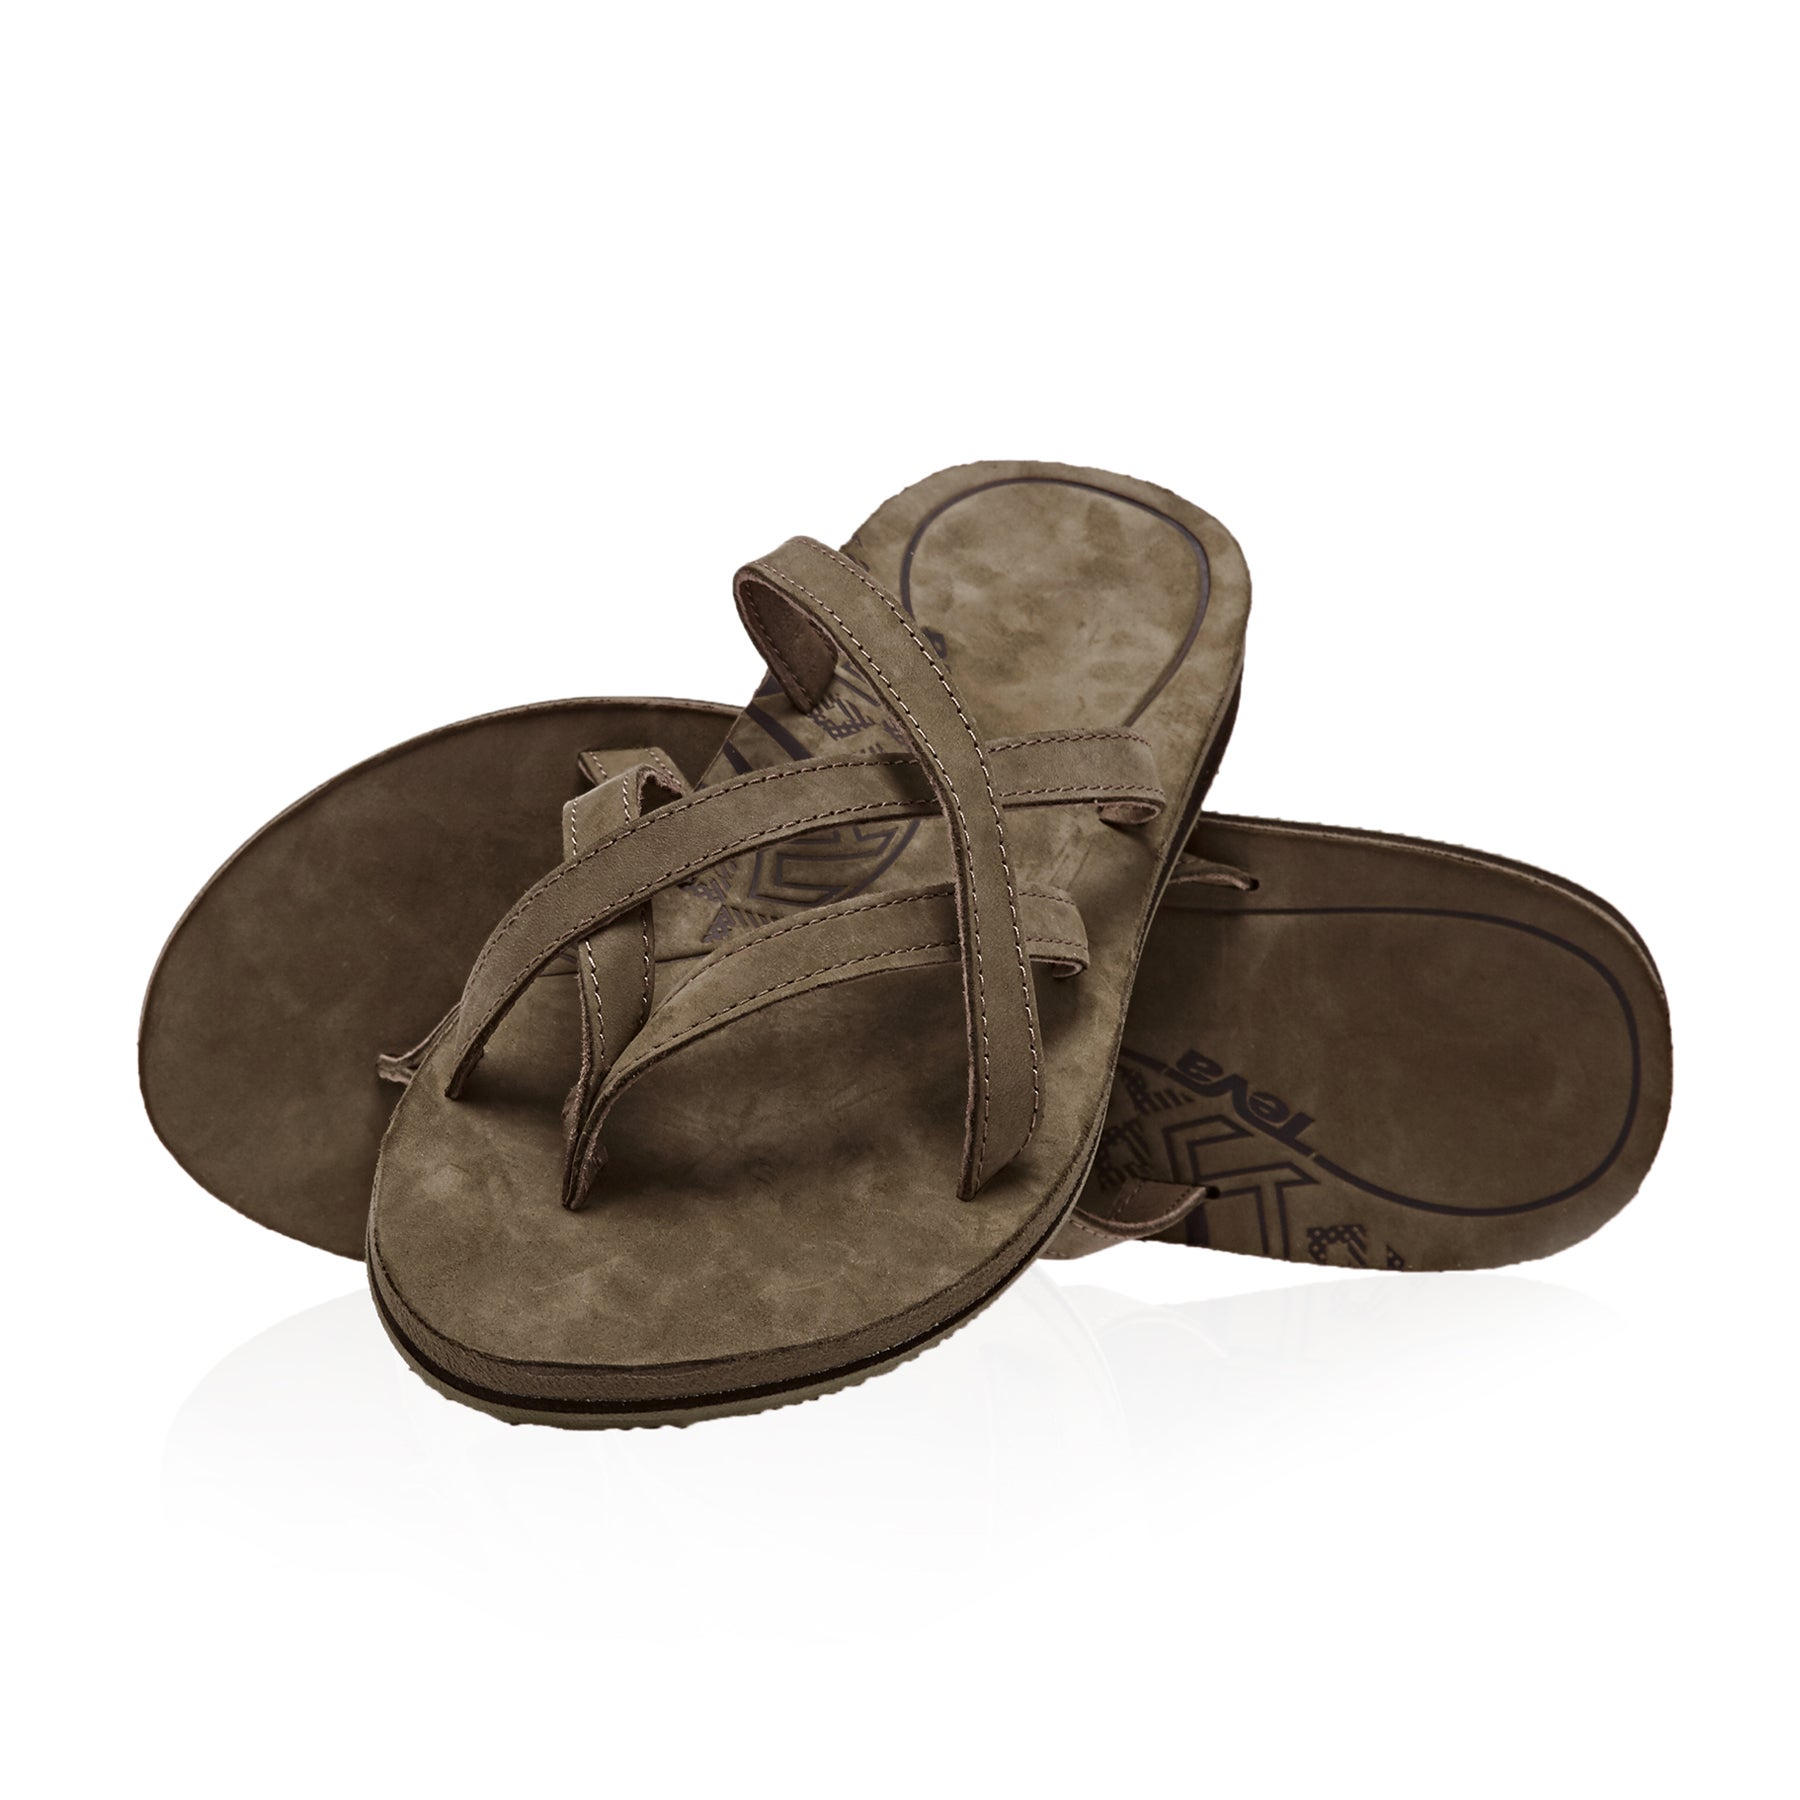 338d5914982d Teva Olowahu Leather Womens Sandals available from Surfdome